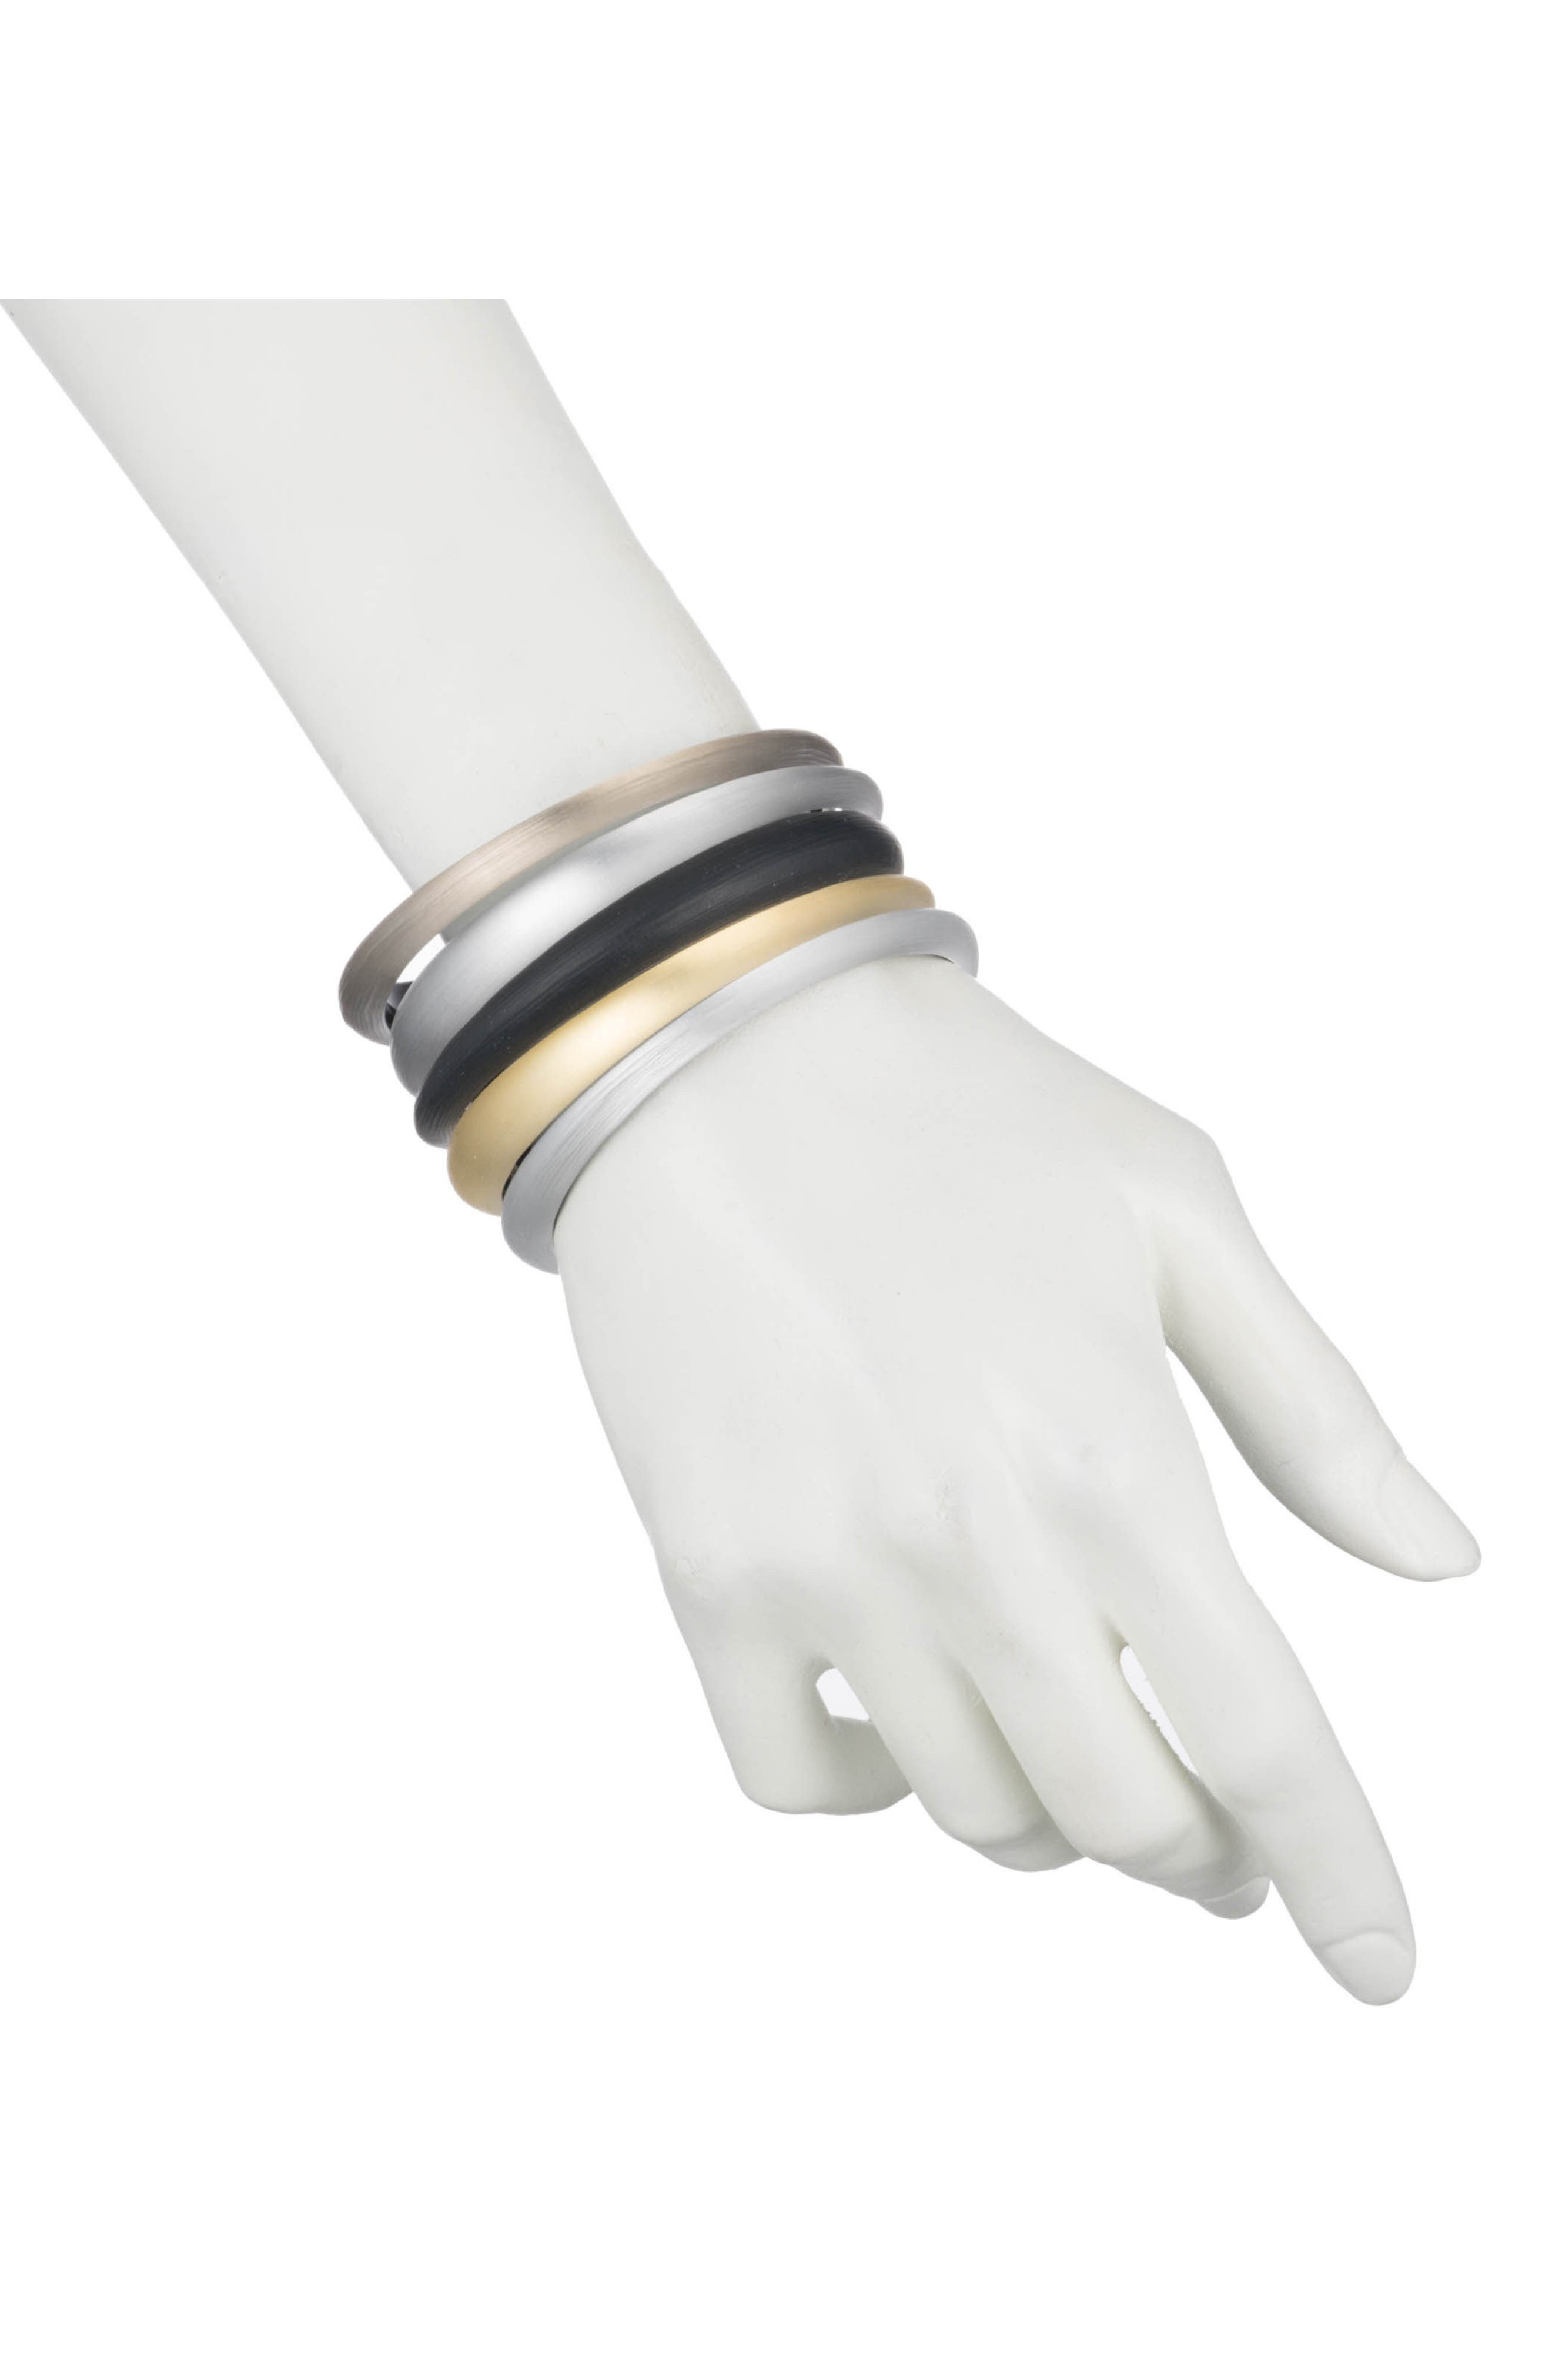 Lucite<sup>®</sup> Set of 5 Tapered Bangles,                             Alternate thumbnail 2, color,                             Grey/ Gold/ Black